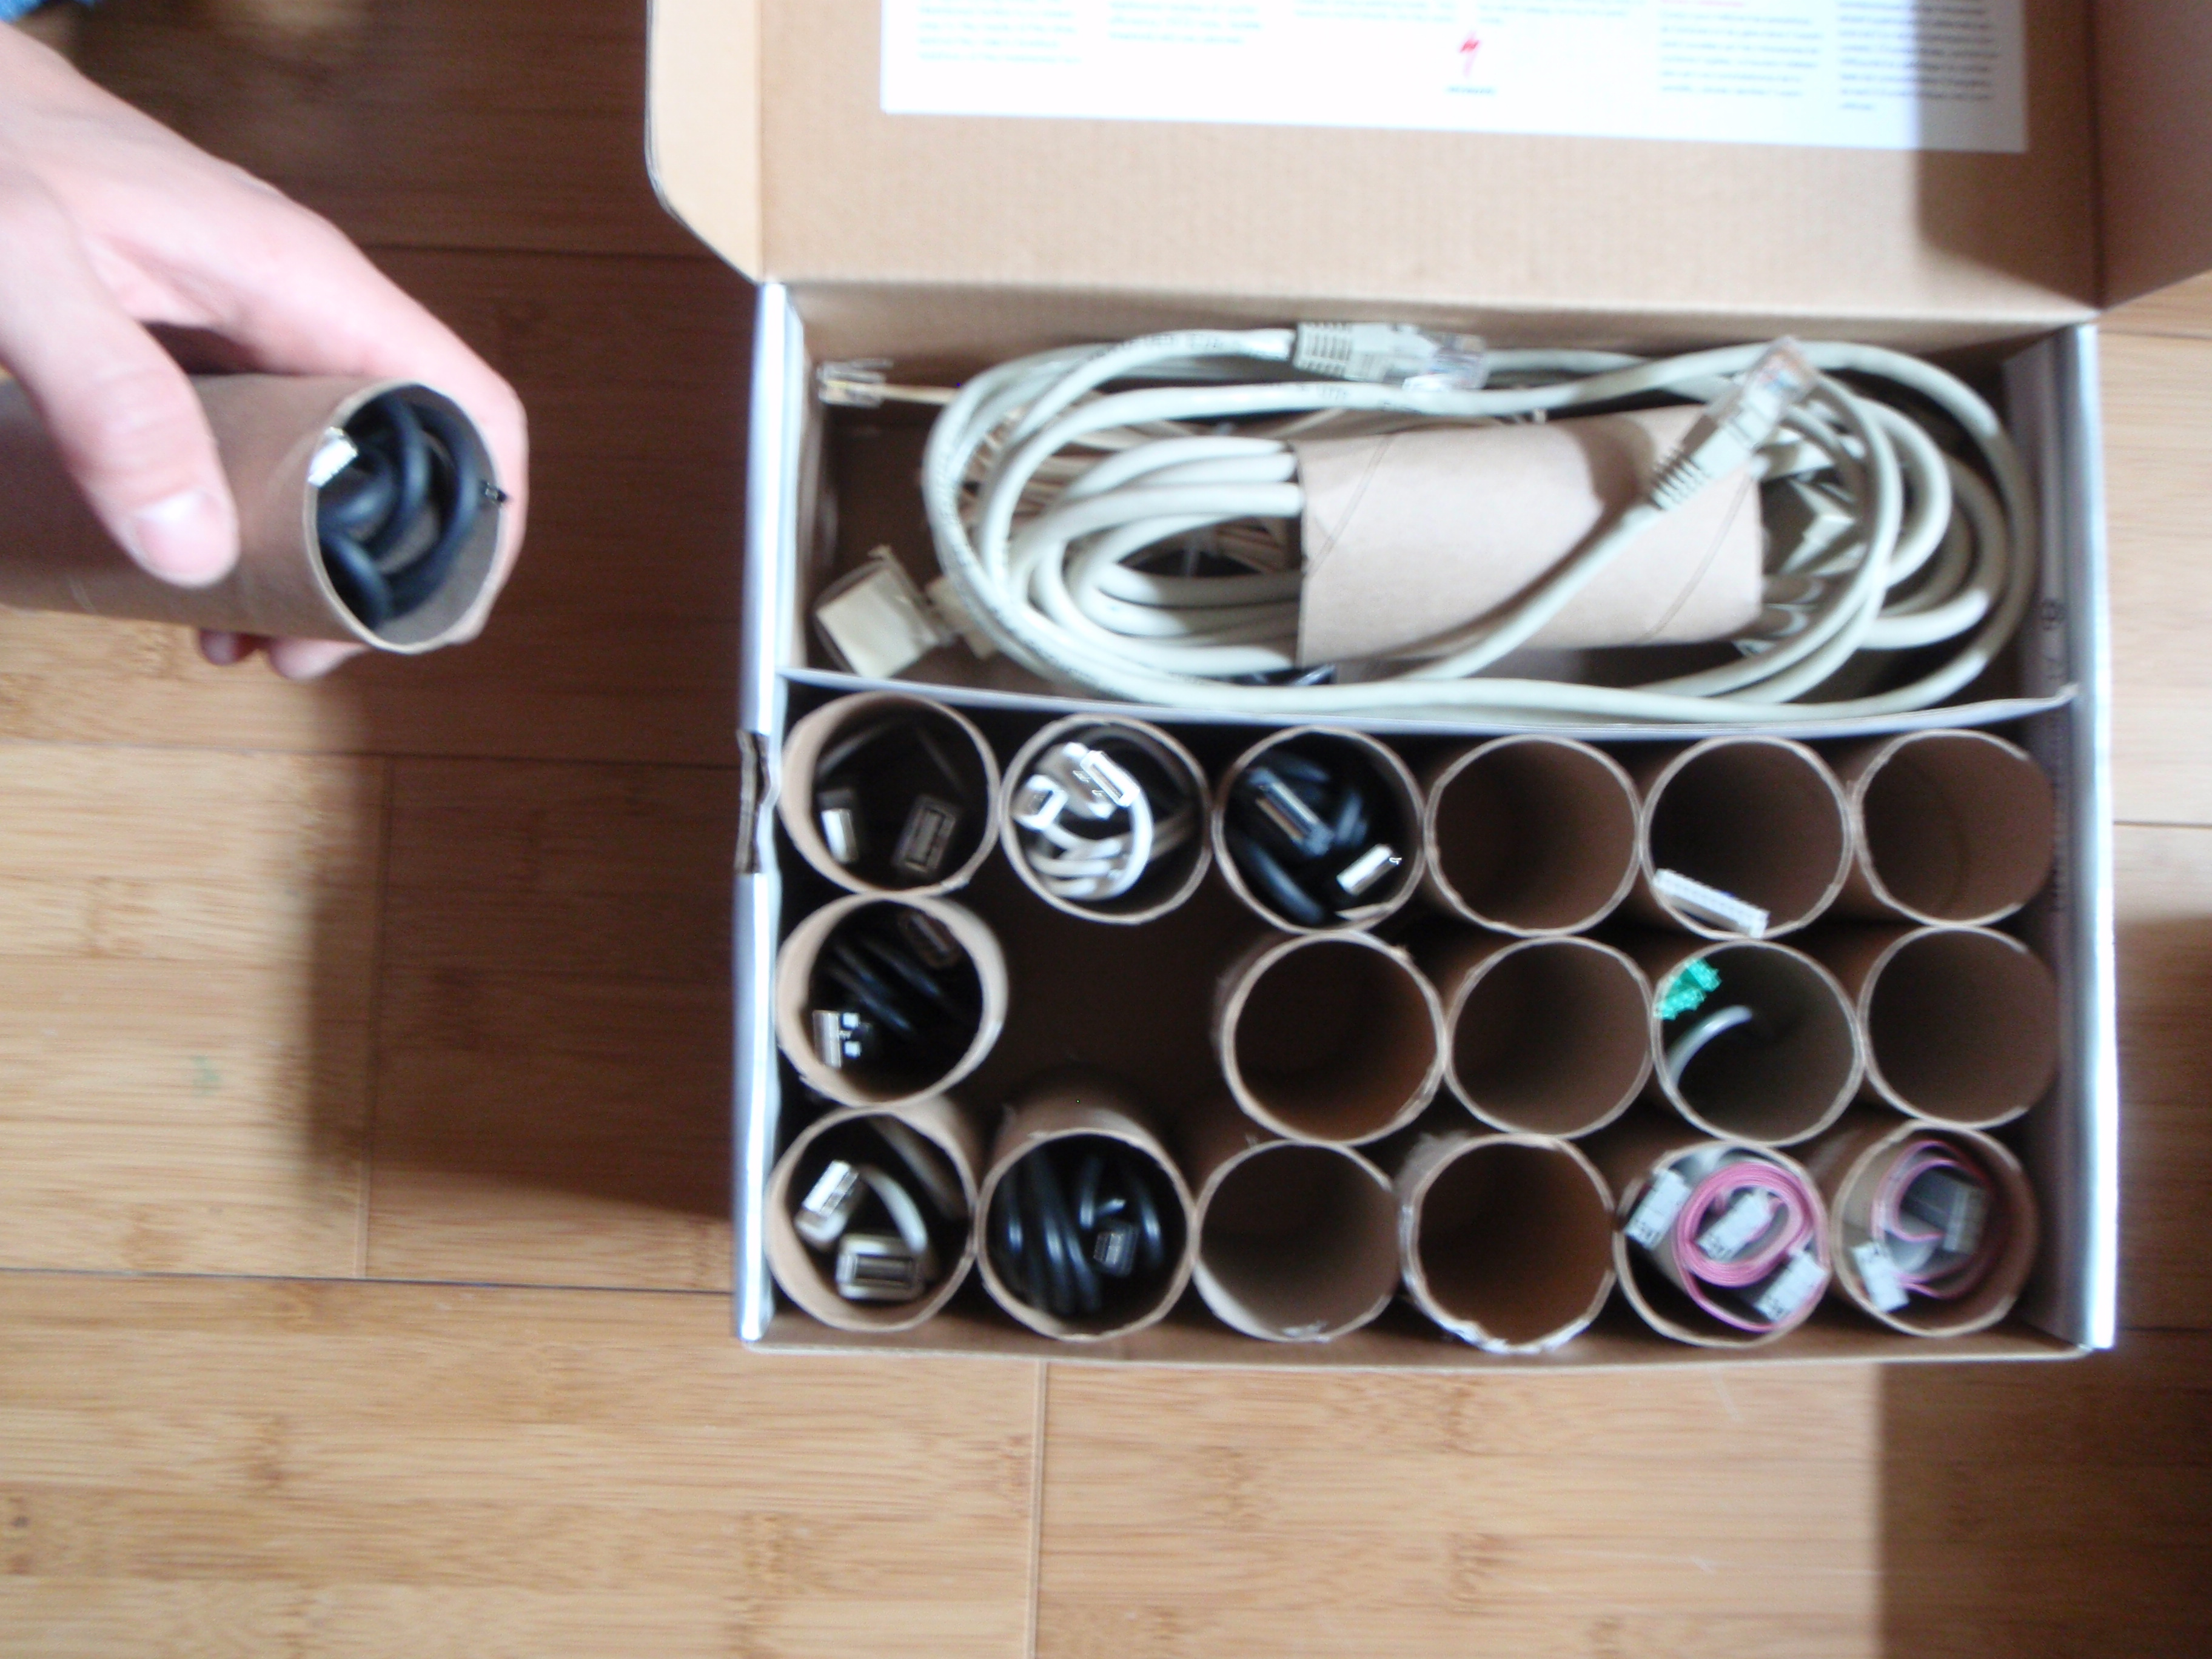 TP Roll Organizer Box instructable